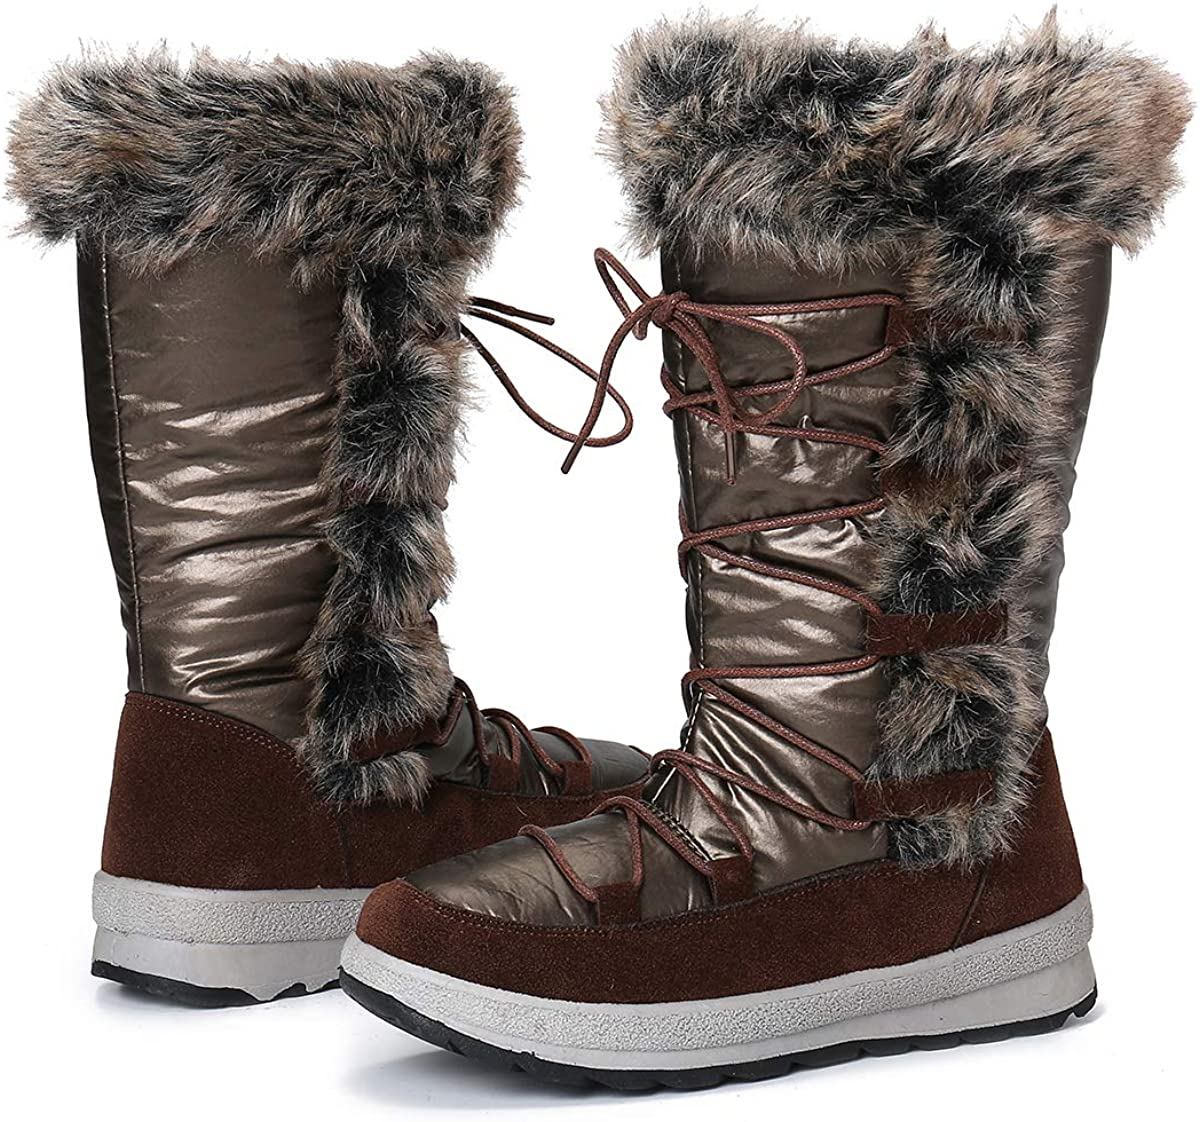 gracosy Winter Snow Boots for Women, Mid Calf Boot Waterproof Fully Fur Lined Warm Outdoor Booties Frosty Snow Boot Zipper Tall Boots